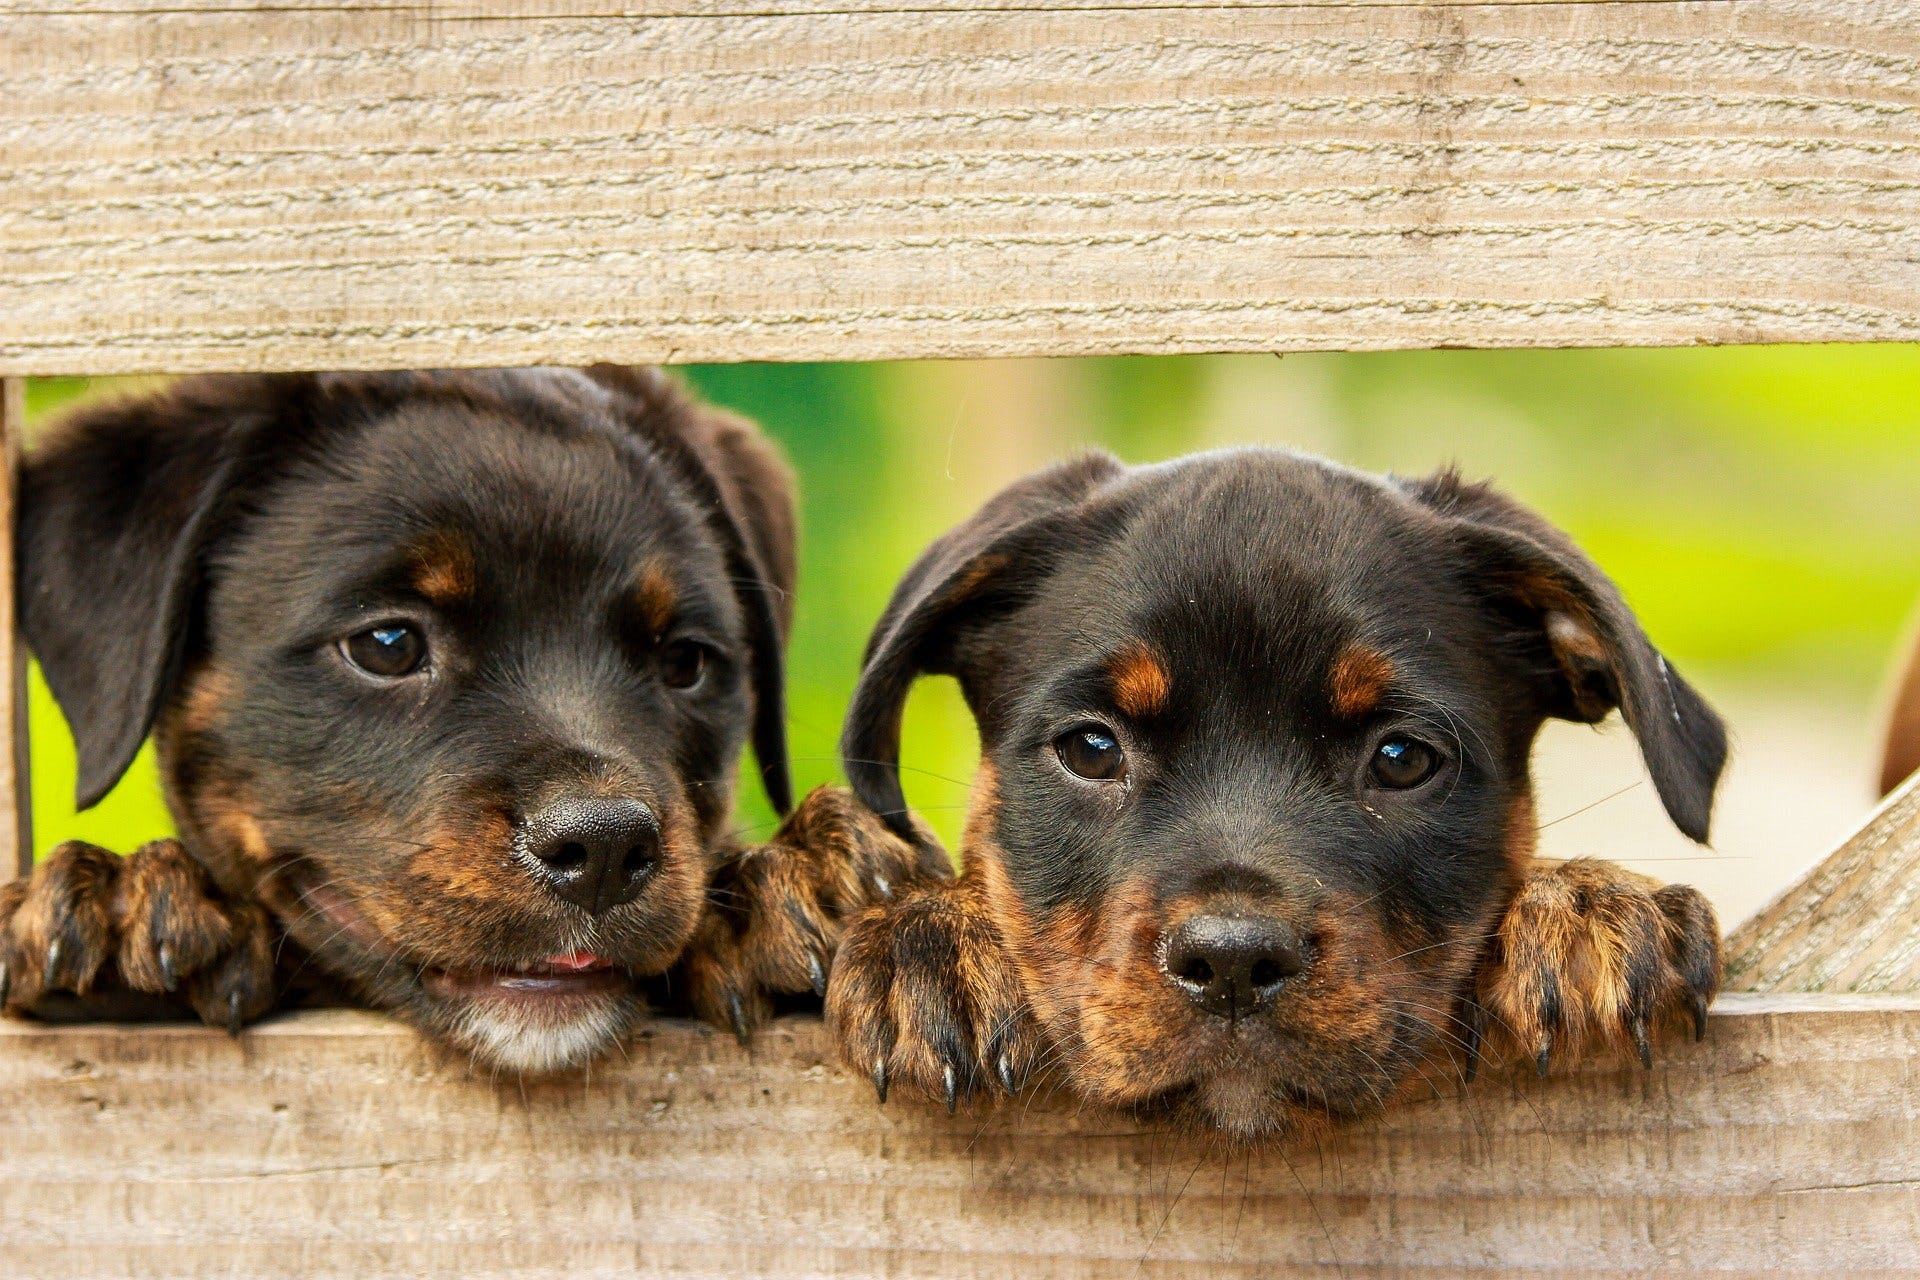 Two young puppies poking their heads through a hole in a gate.